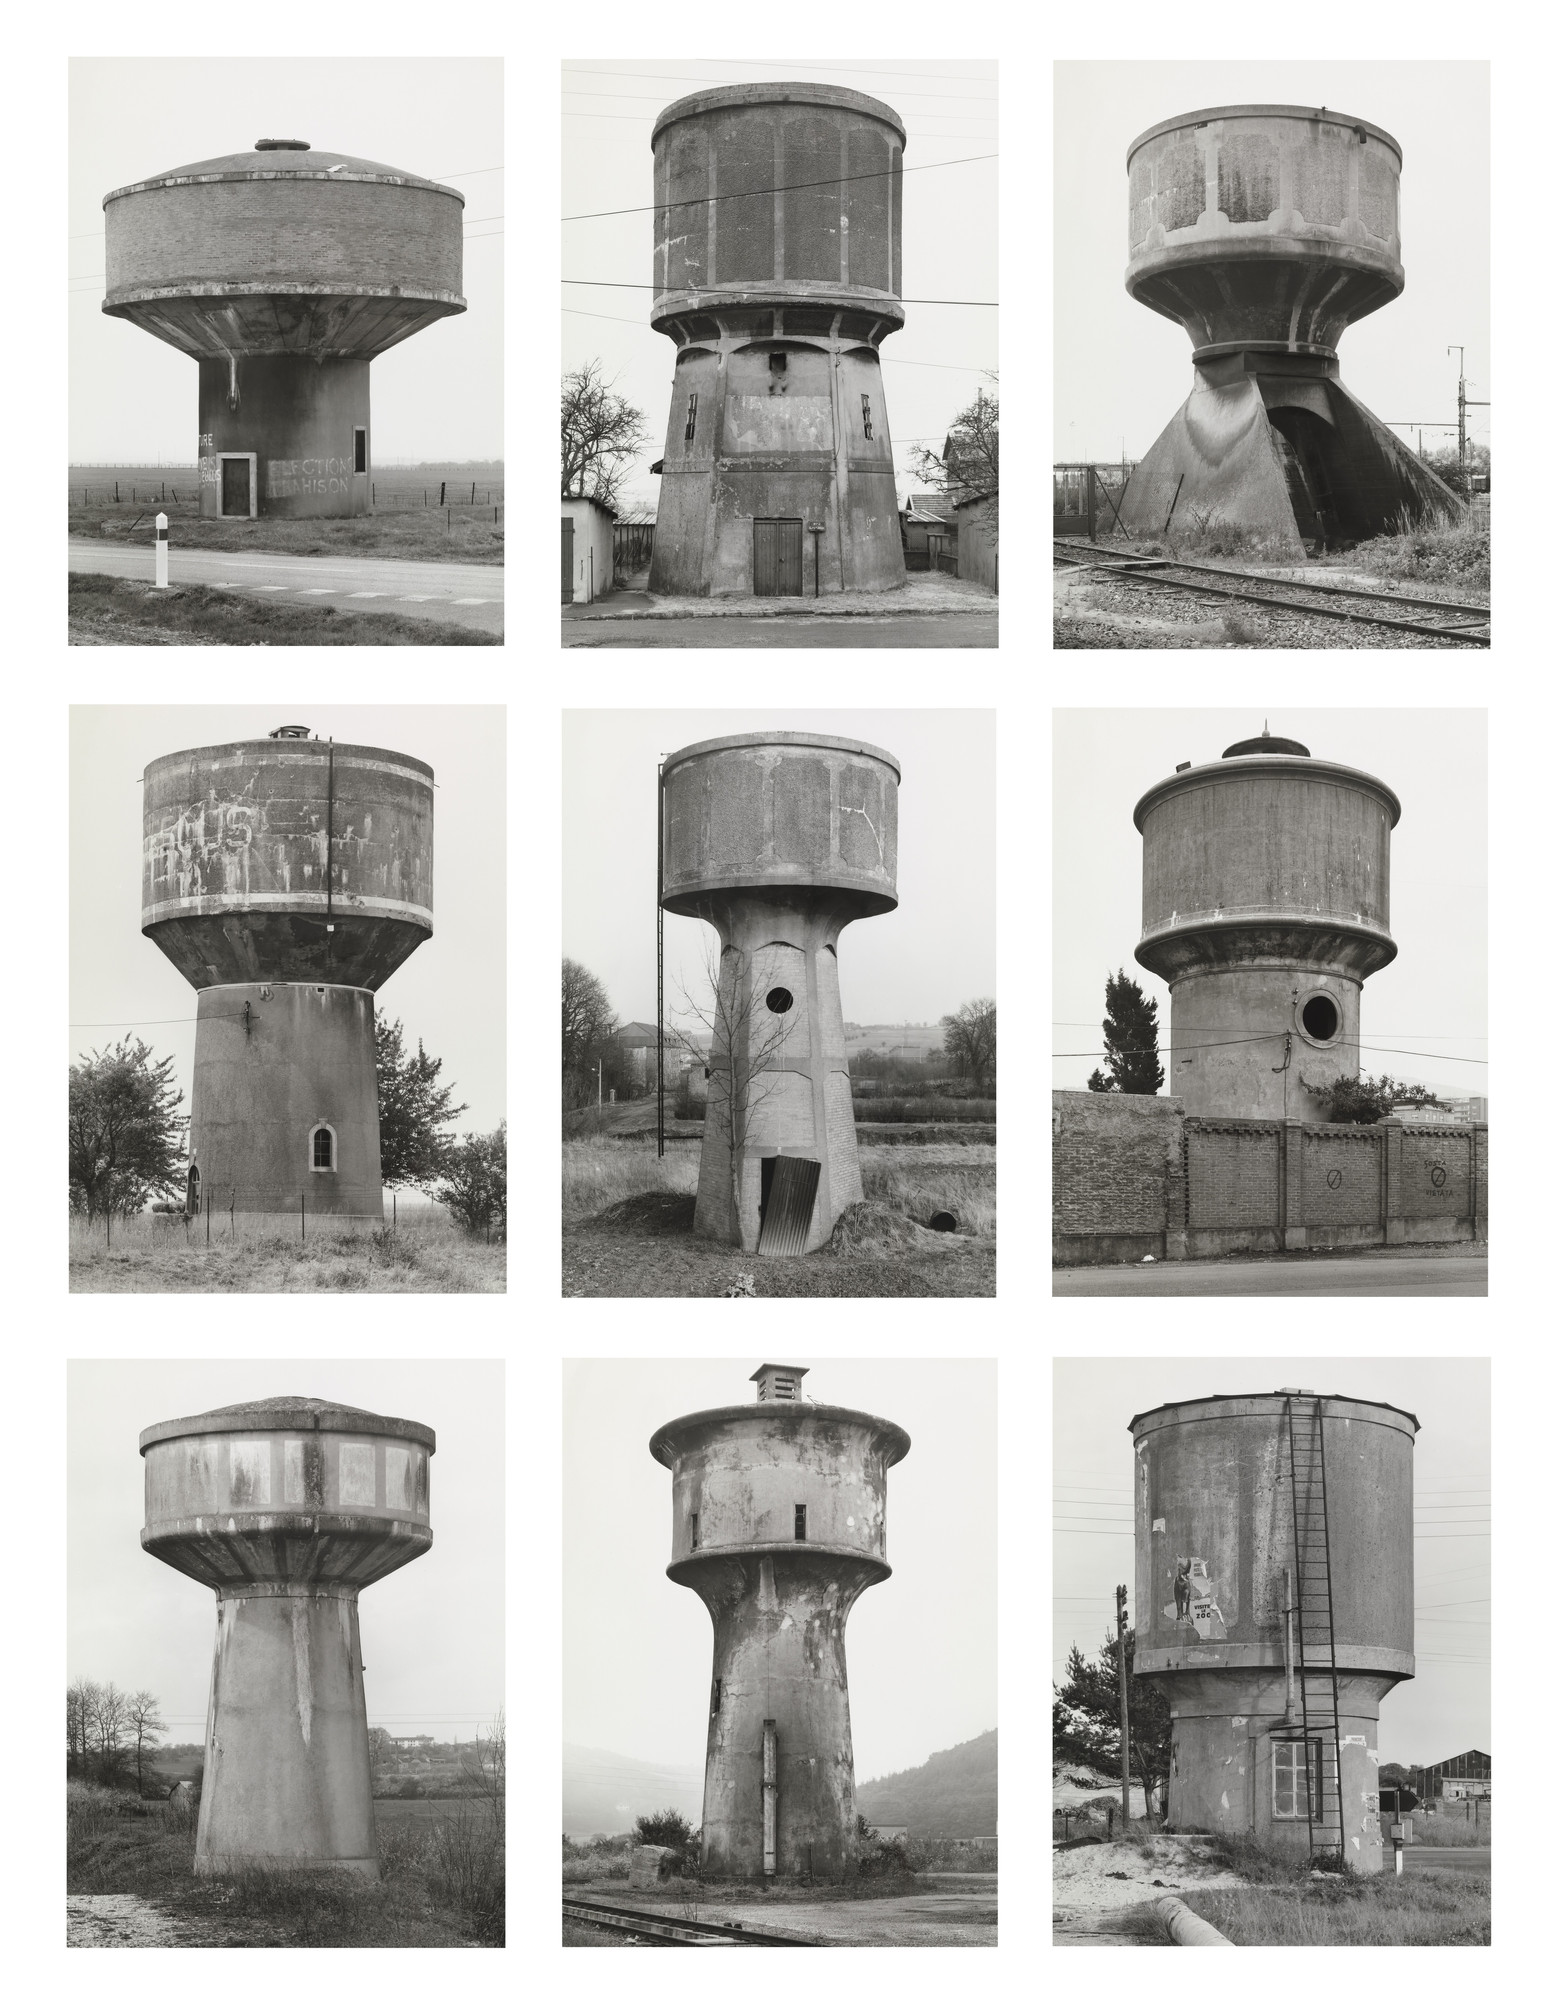 Bernd Becher, Hilla Becher. Water Towers. 1988